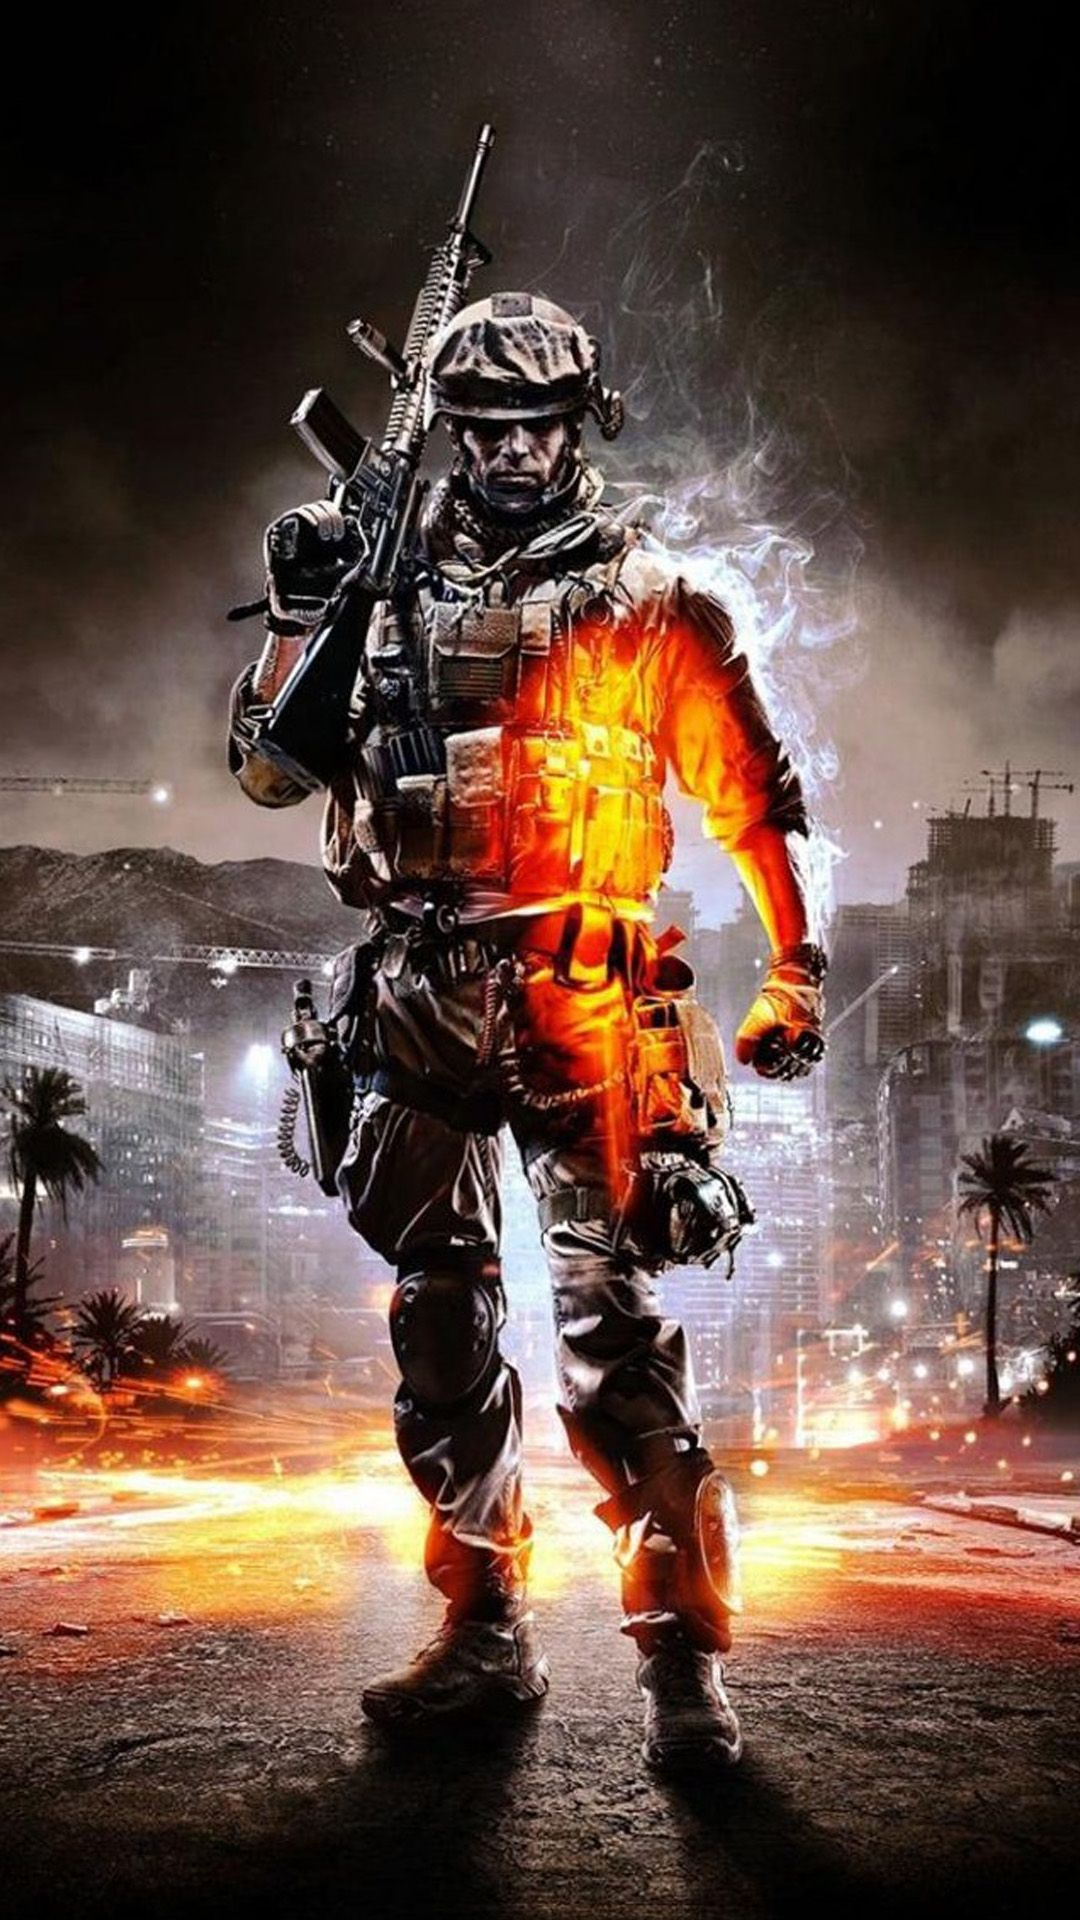 Modern Warfare Call Of Duty Background Indian Army Wallpapers Army Wallpaper Army Images